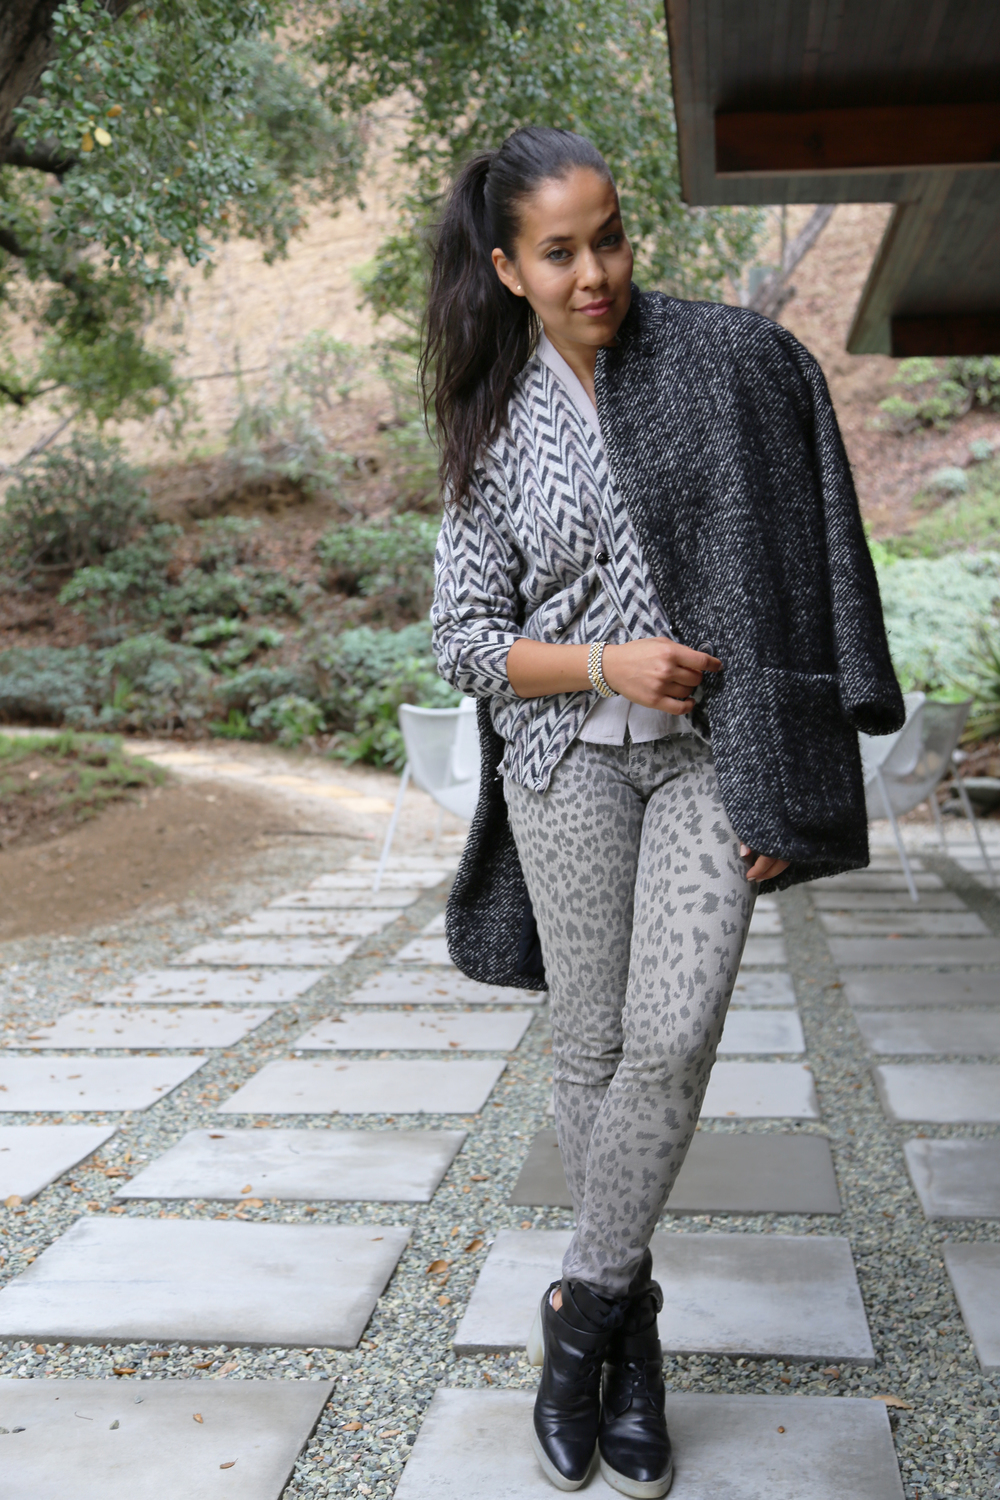 helmut-lang-grey-isabel-marant-coat-current-elliott-leopard-jeans-cardigan-print-los-angeles.jpg